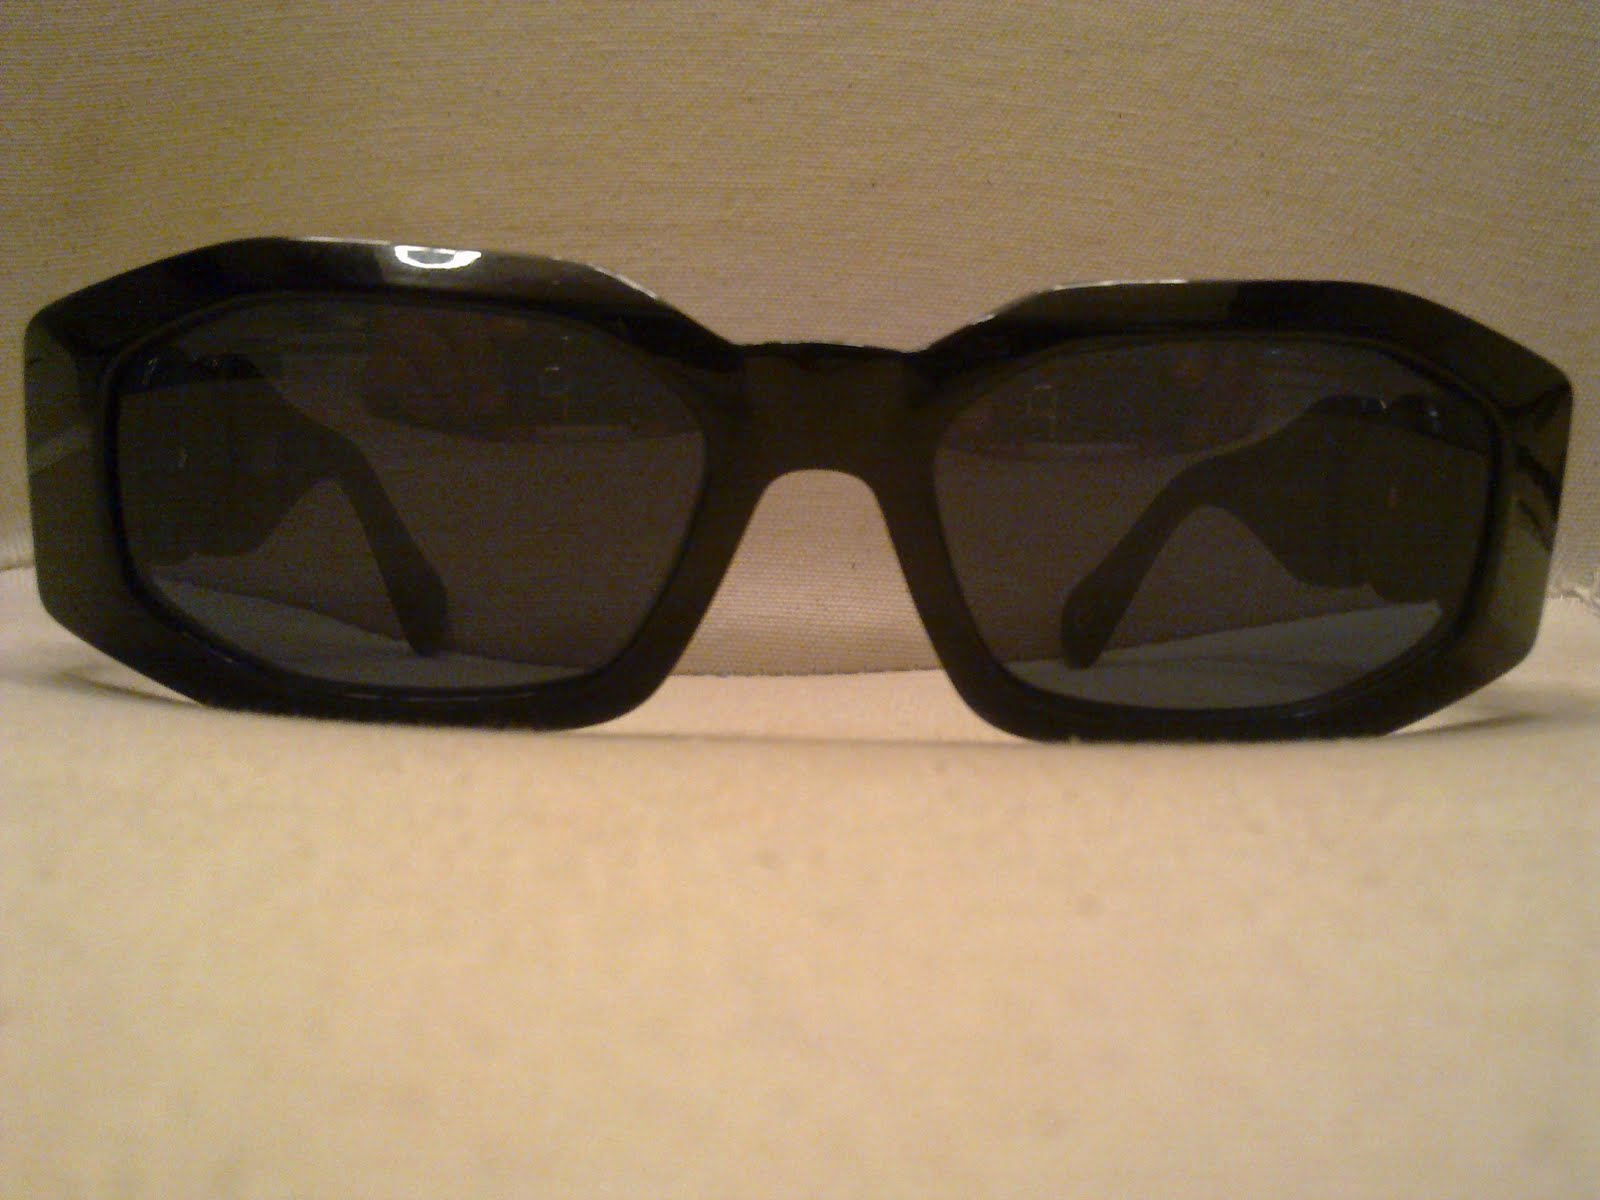 9fd6cf43ac1 Genuine GIANNI VERSACE Mod 414 A Black. Stunning! With golden Medusa Head  on arms! Conditions 8 10!!!